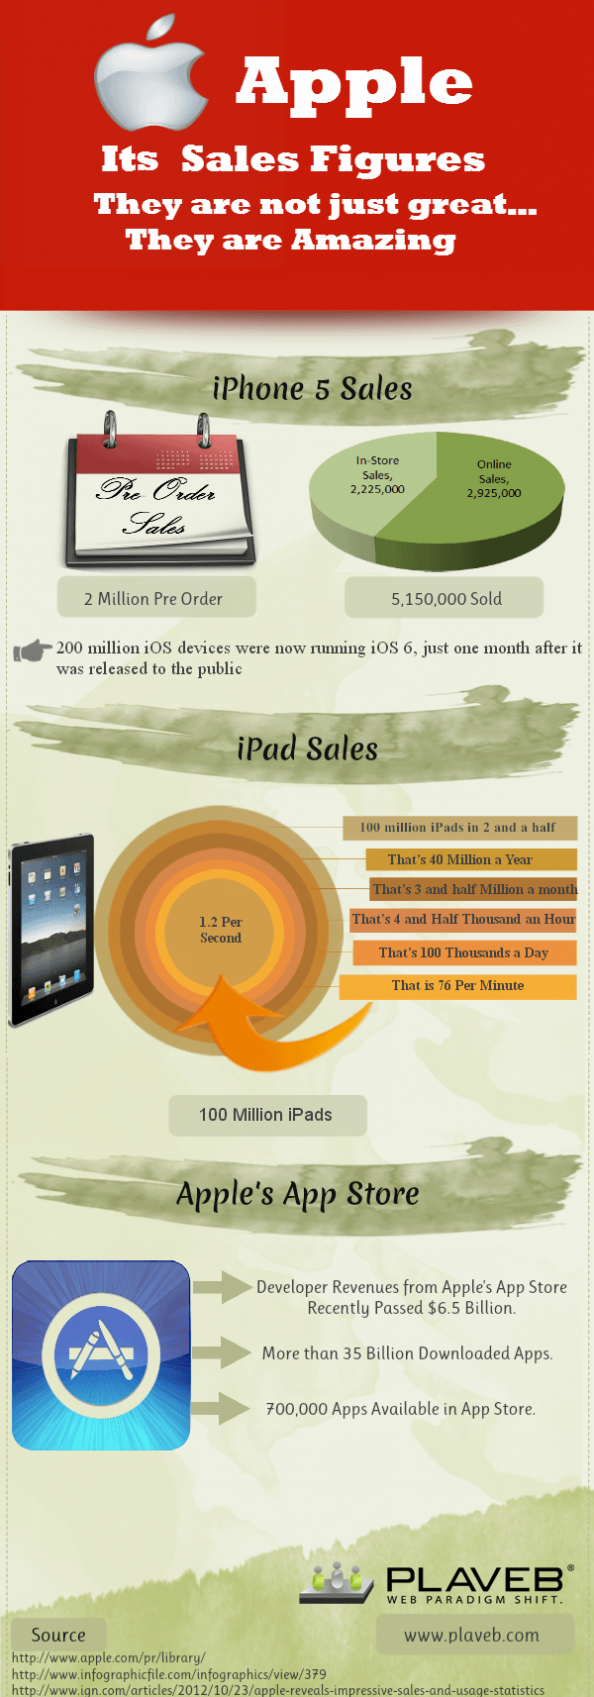 Apple and its Sales Figures - They are not just great They are Amazing Infographic